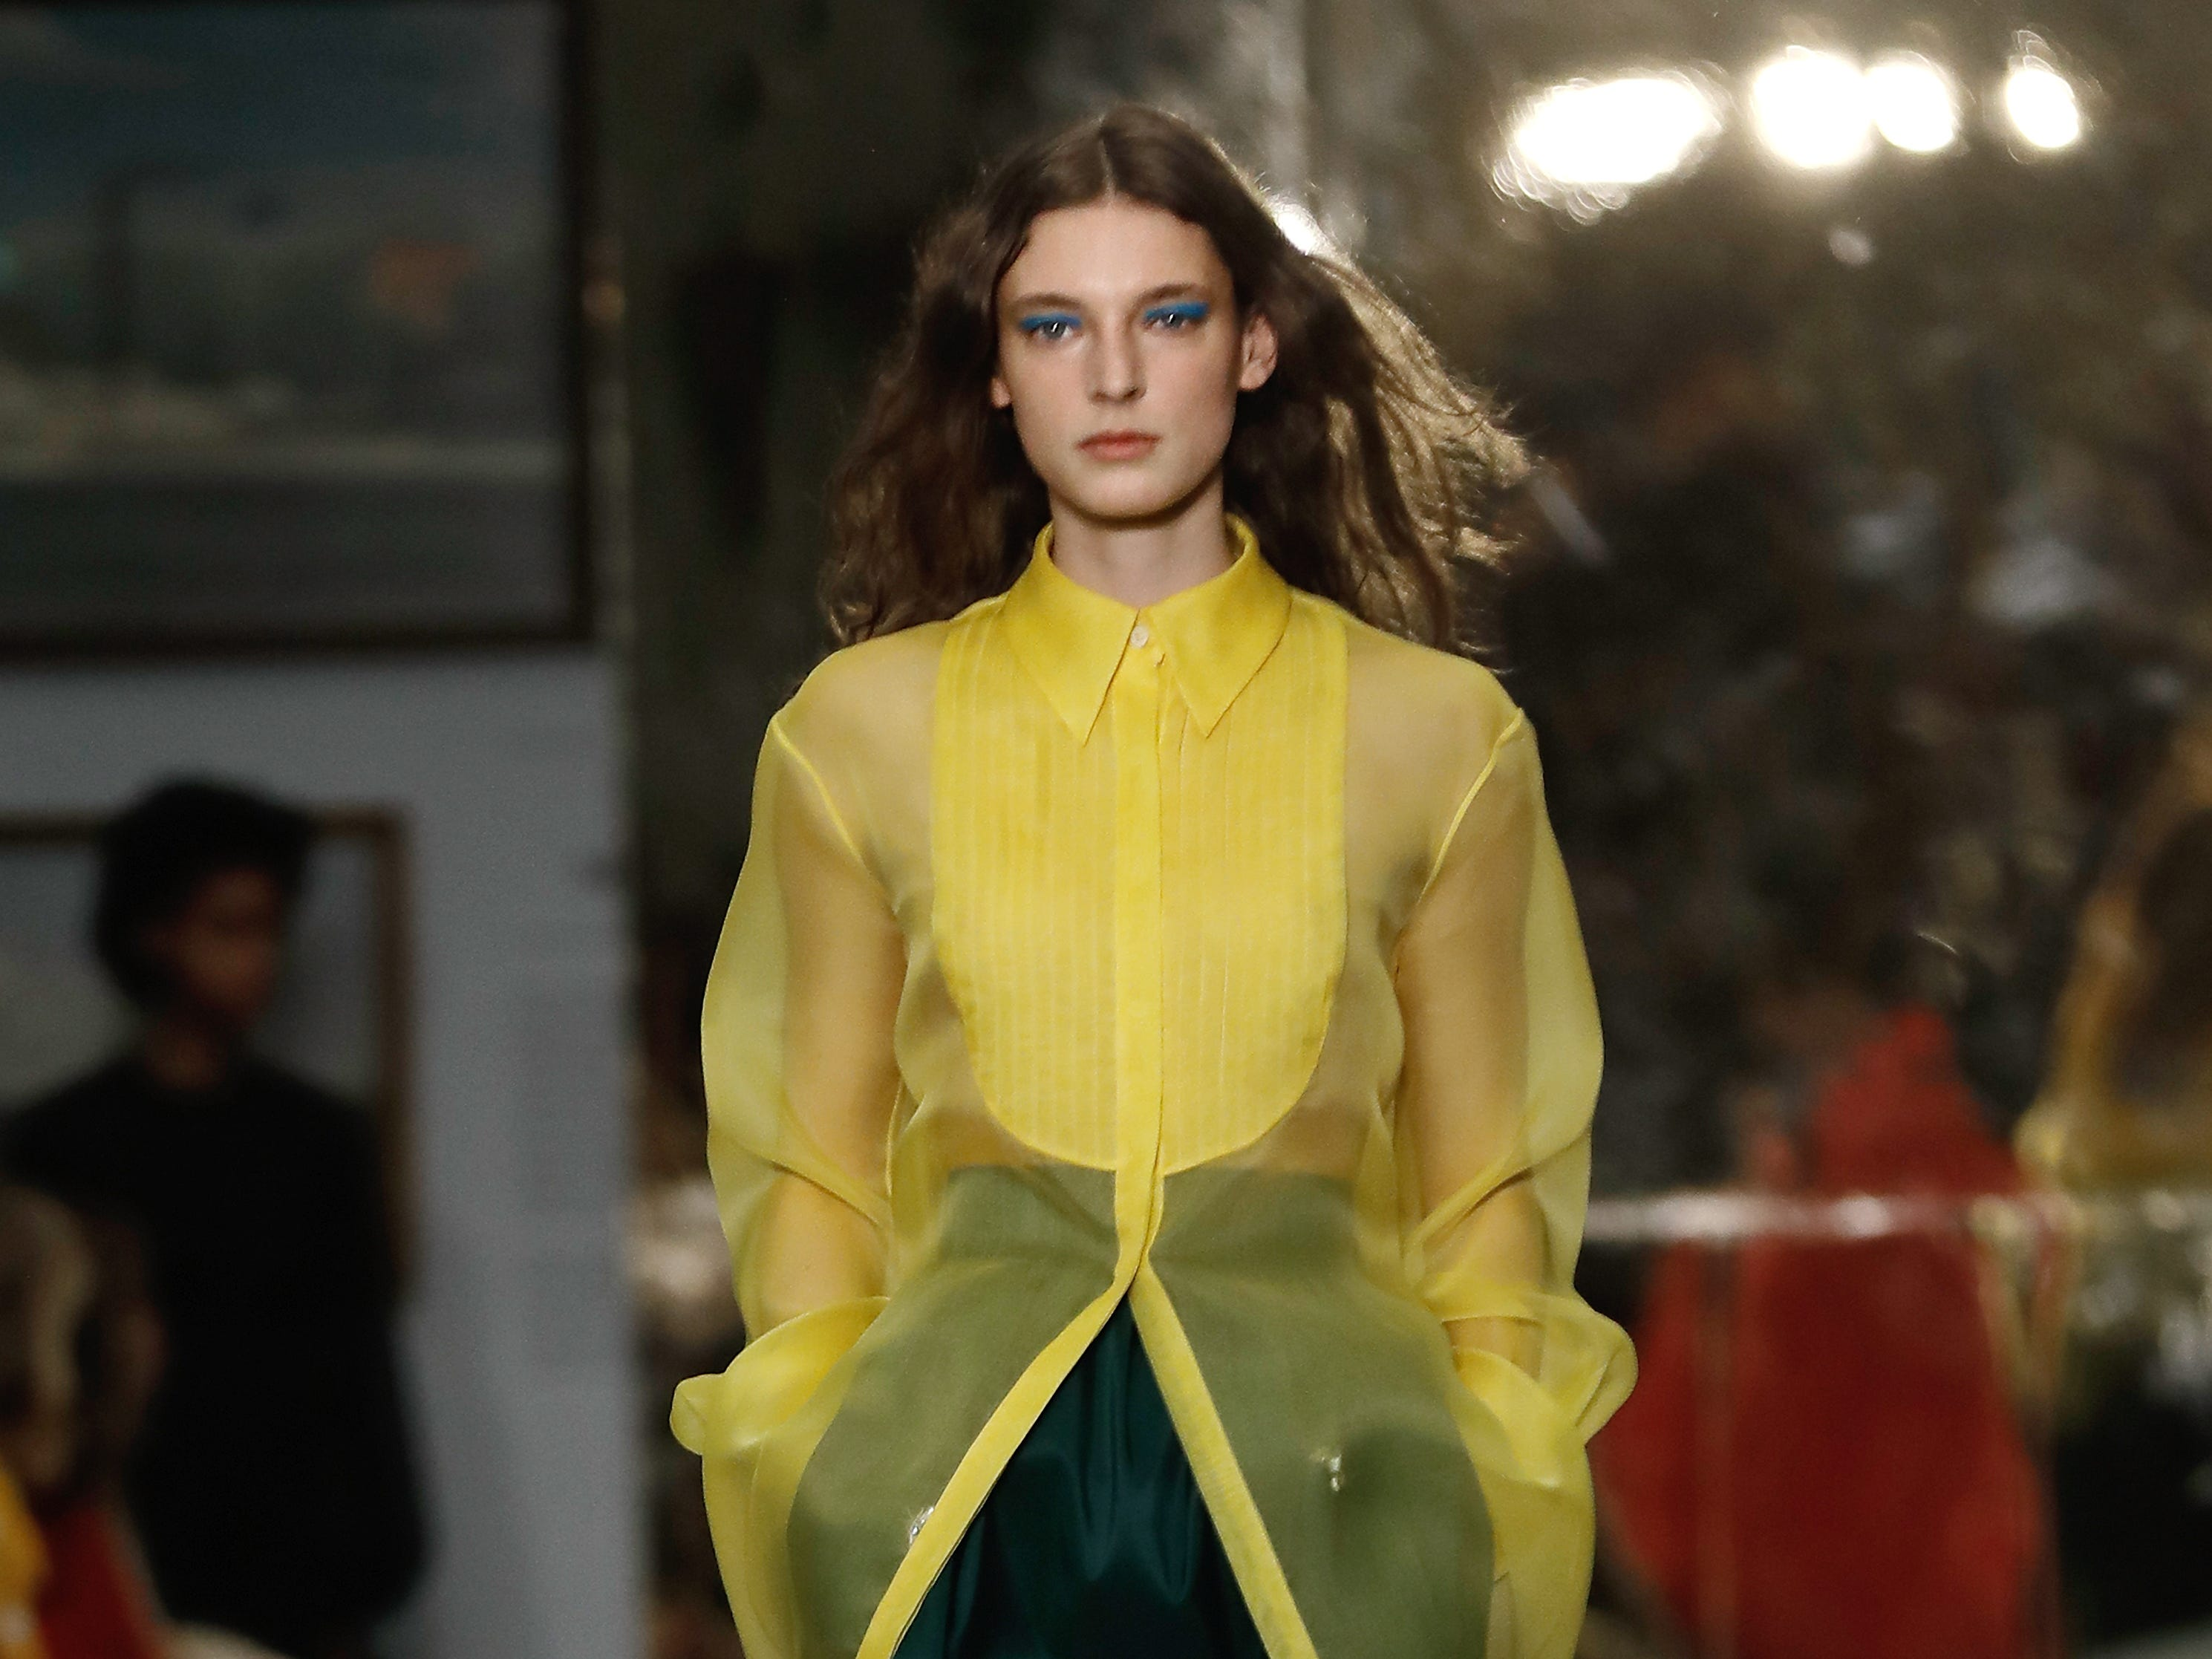 A sheer, canary-yellow tuxedo shirt from Carolina Herrera topped a dark skirt with matching embroidery.